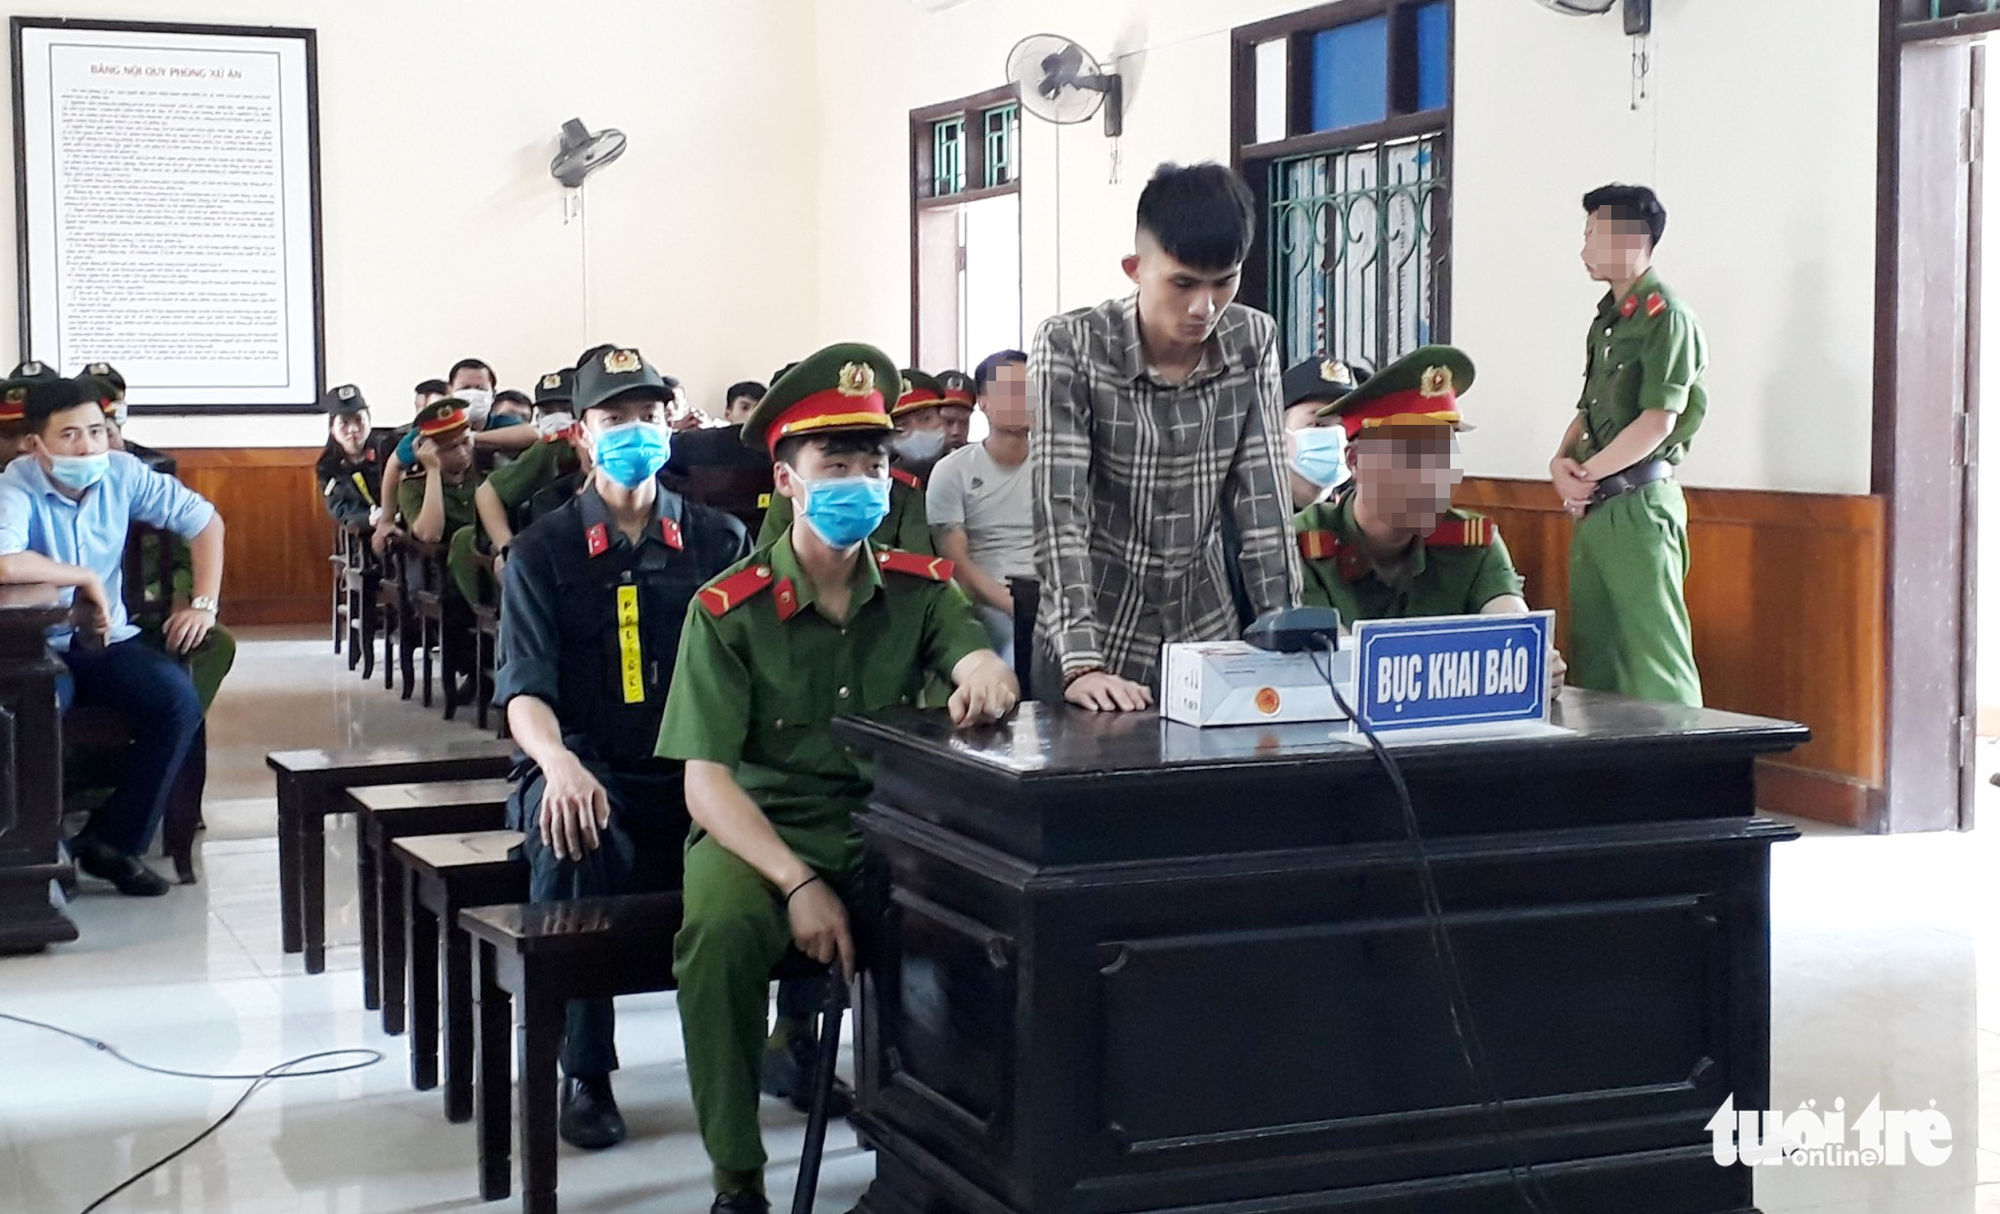 Two men sentenced to death for trading drugs in north-central Vietnamese provinces